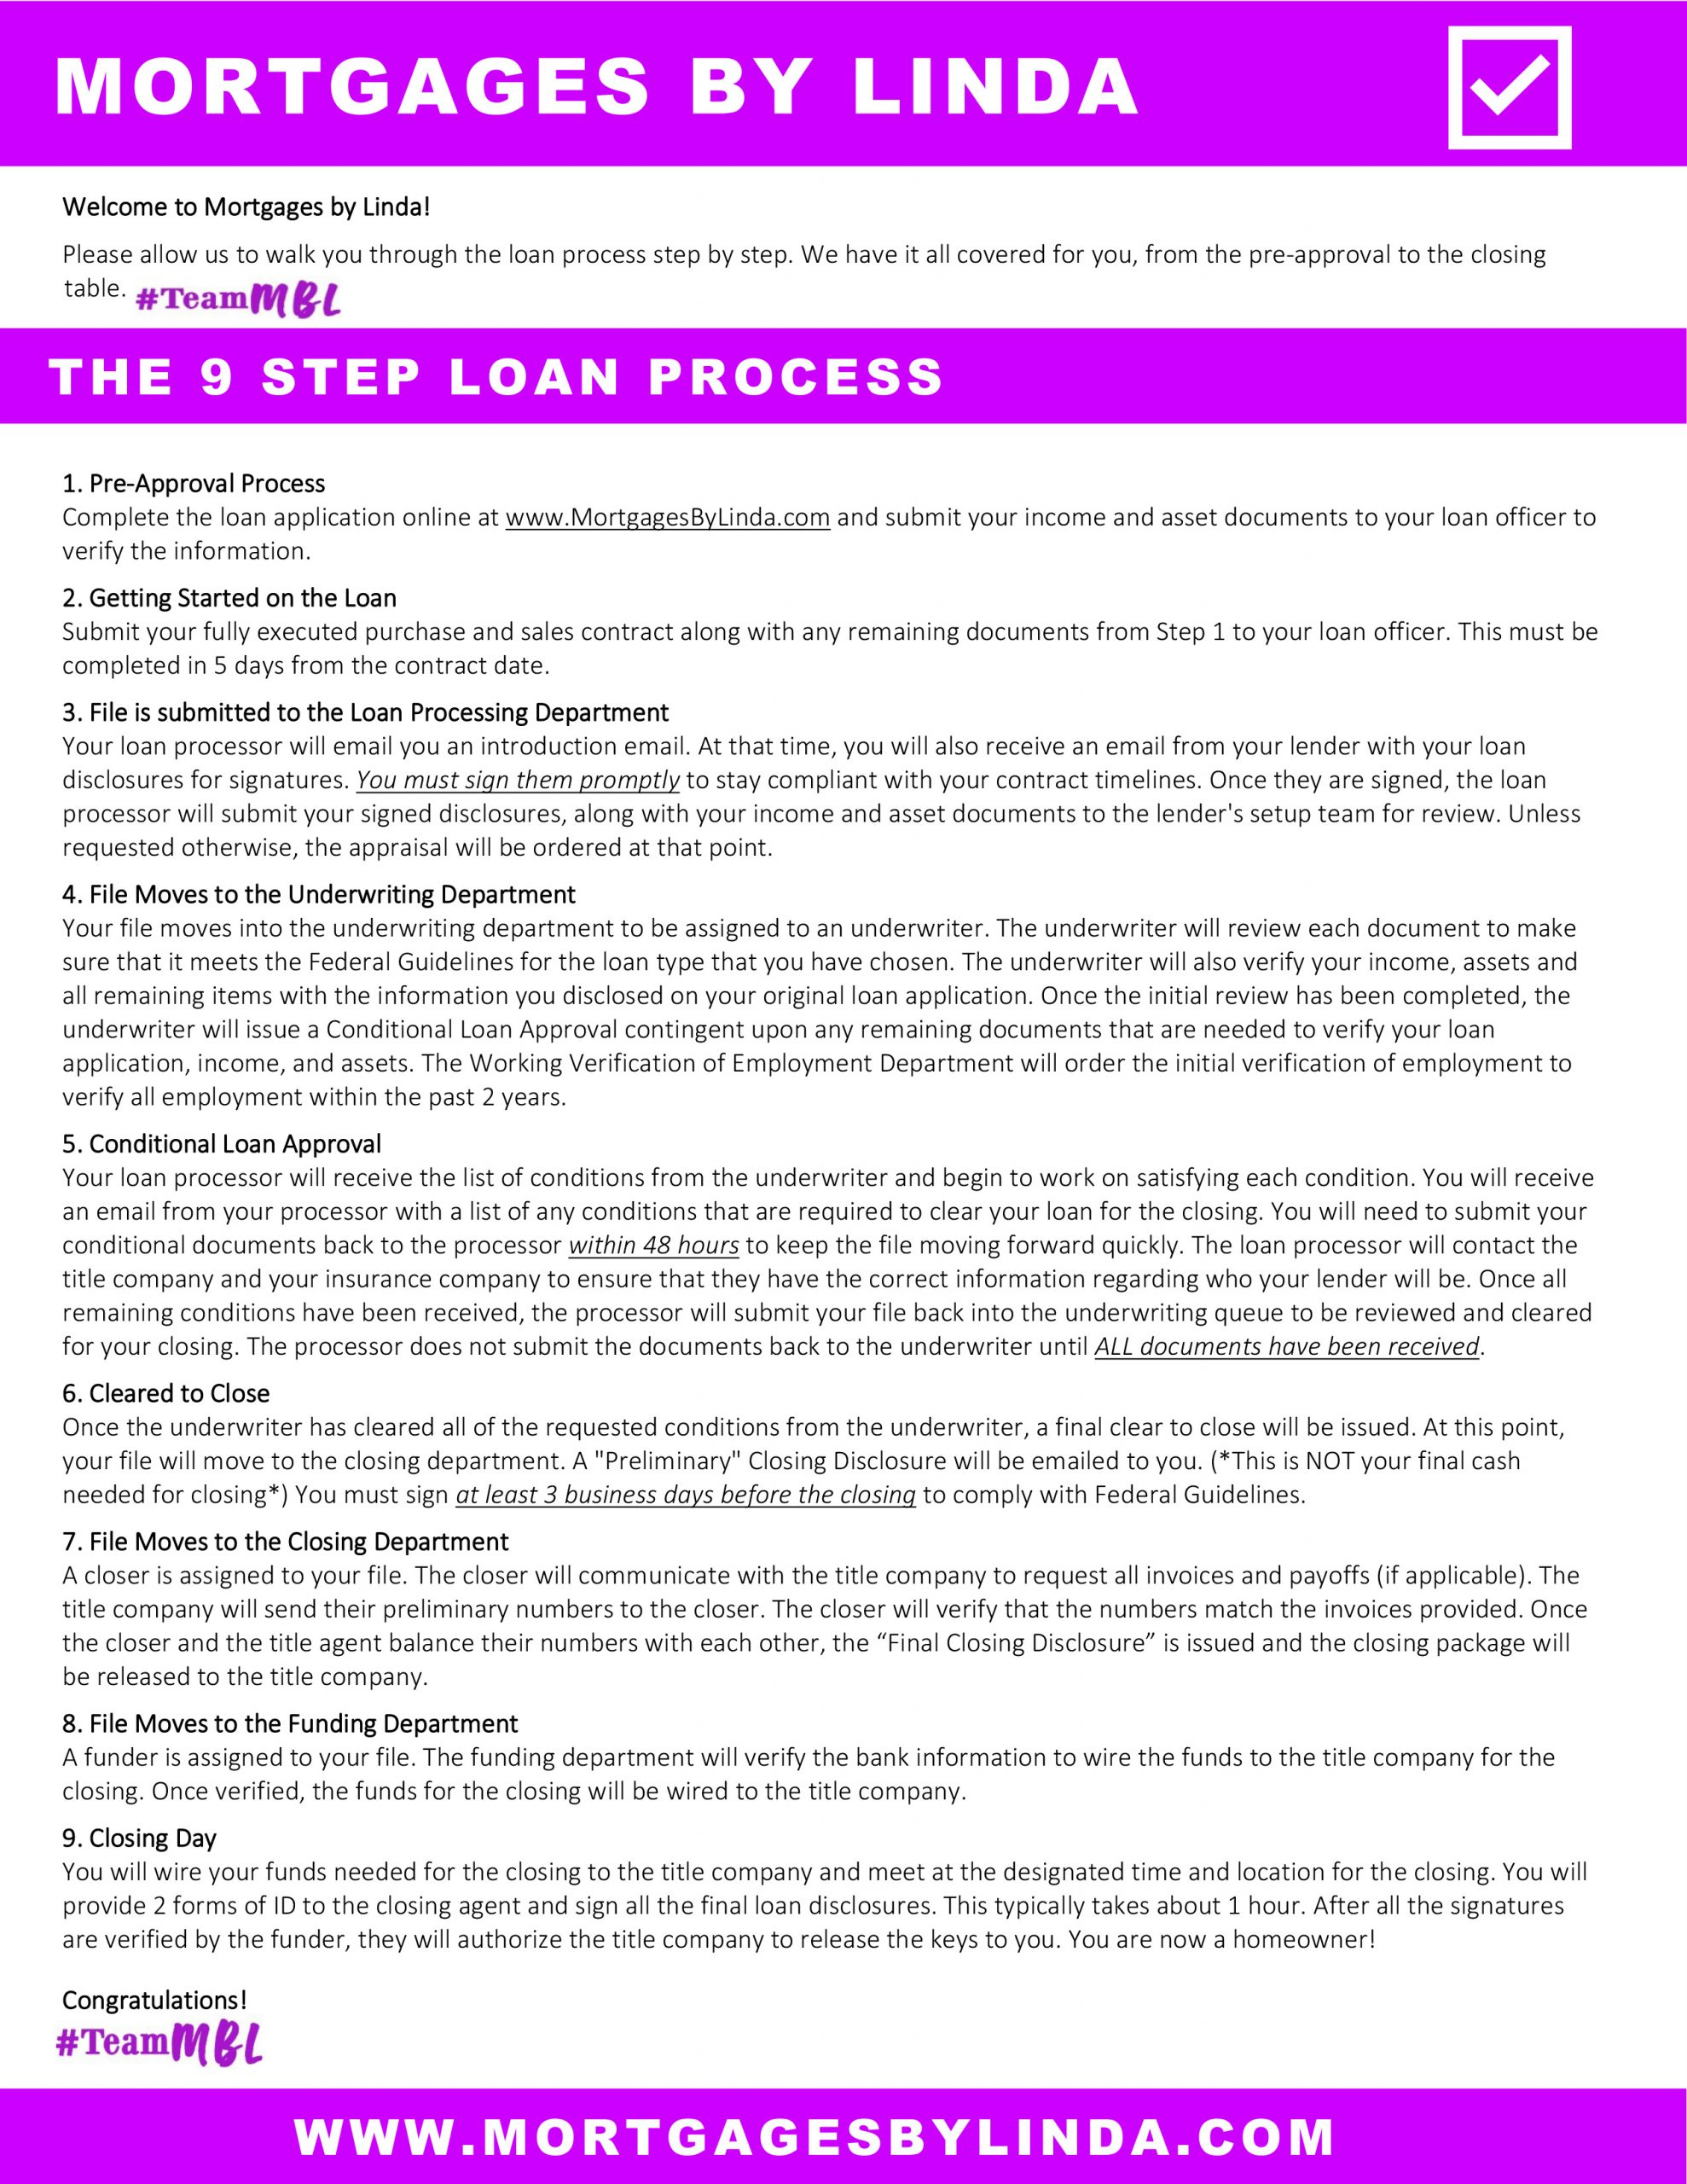 9 Step Loan Process Mortgages By Linda Jacksonville Florida